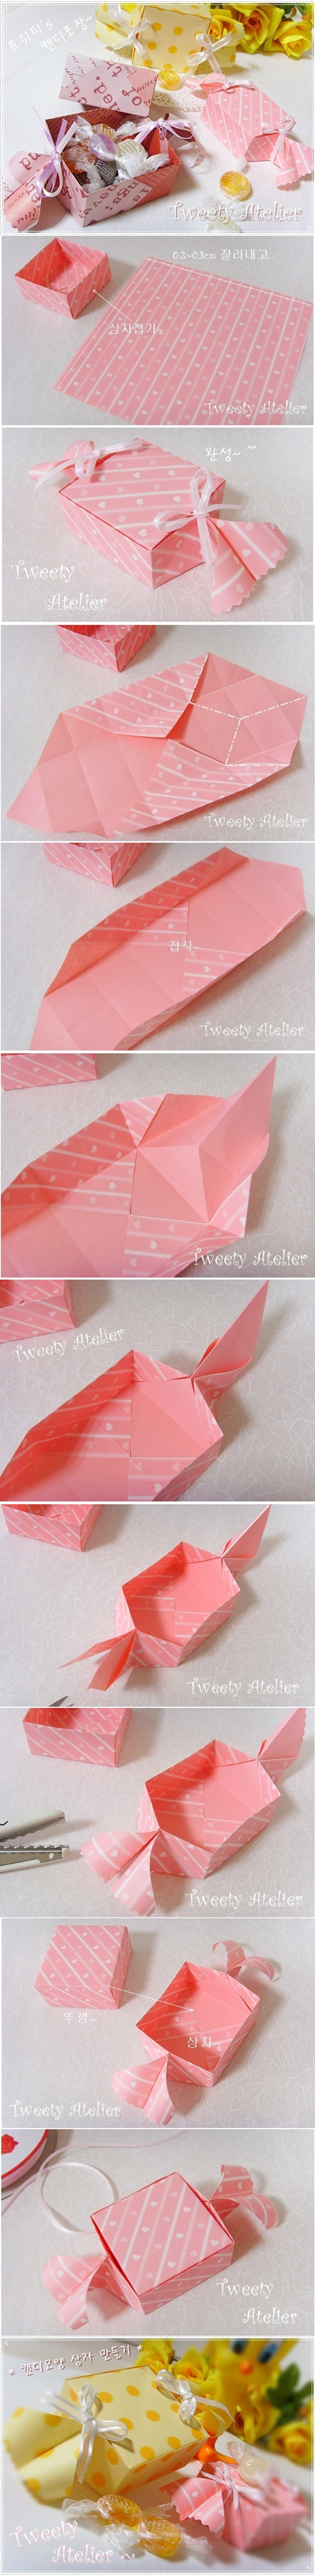 DIY Candy Shaped Paper Candy Gift Box-ORIGAMI gift box tutorial (with picture)